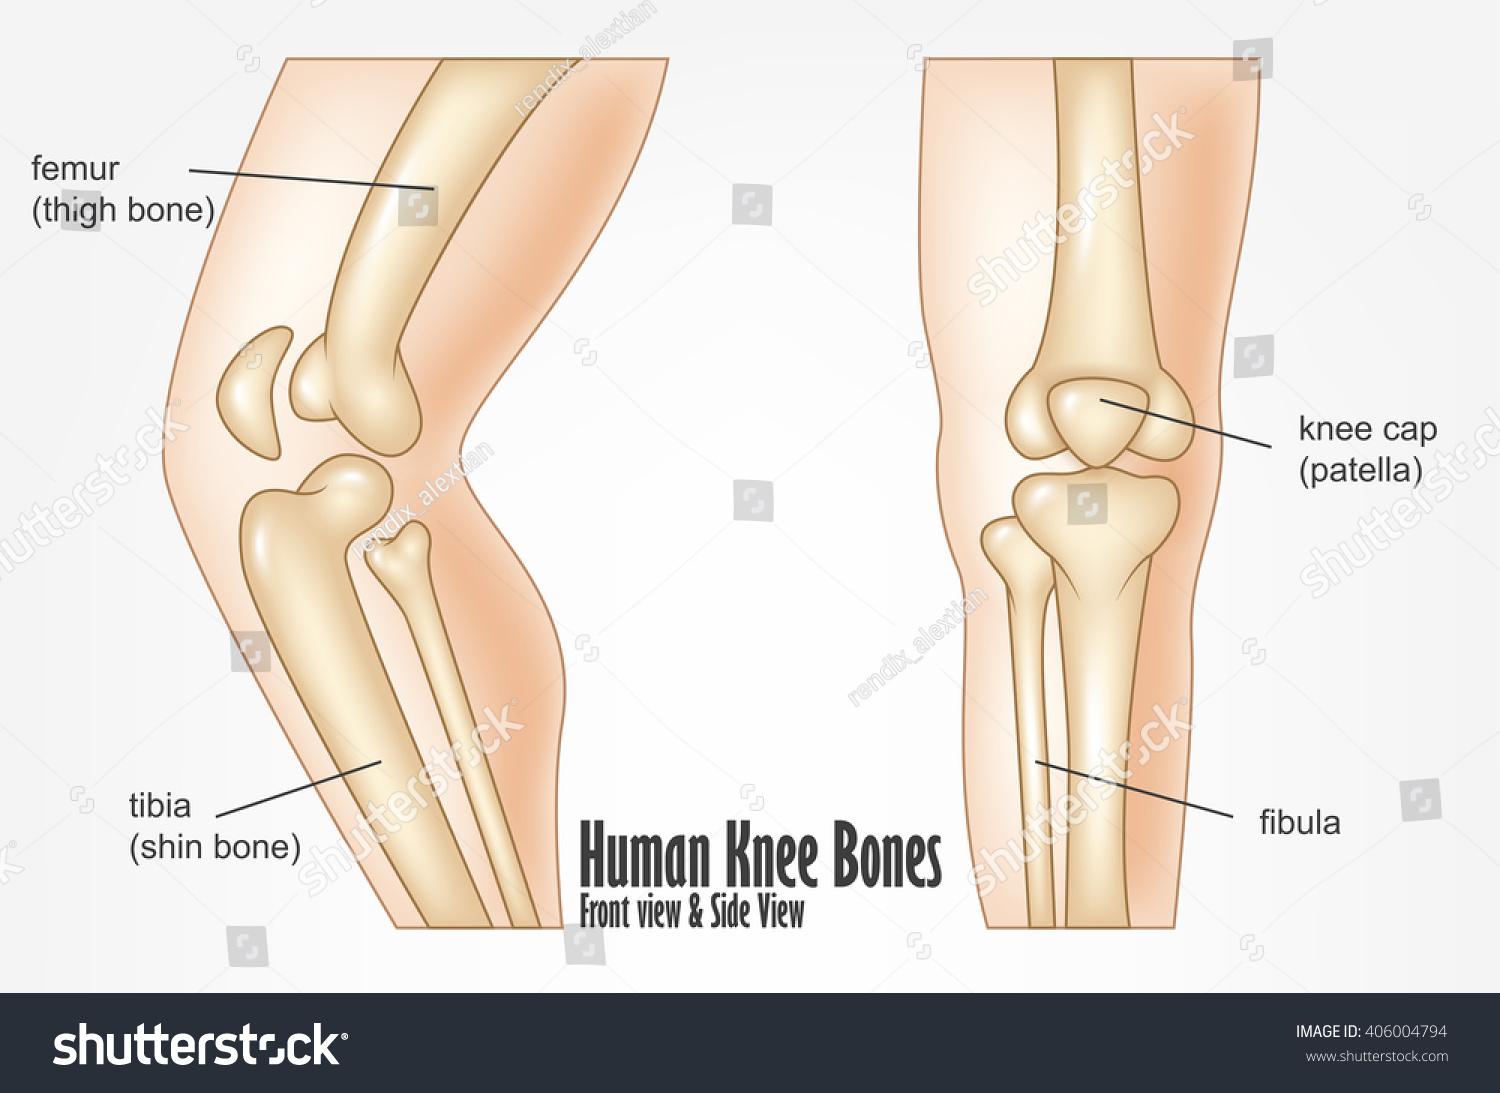 Human Knee Bones Front Side View Stock Illustration 406004794 ...